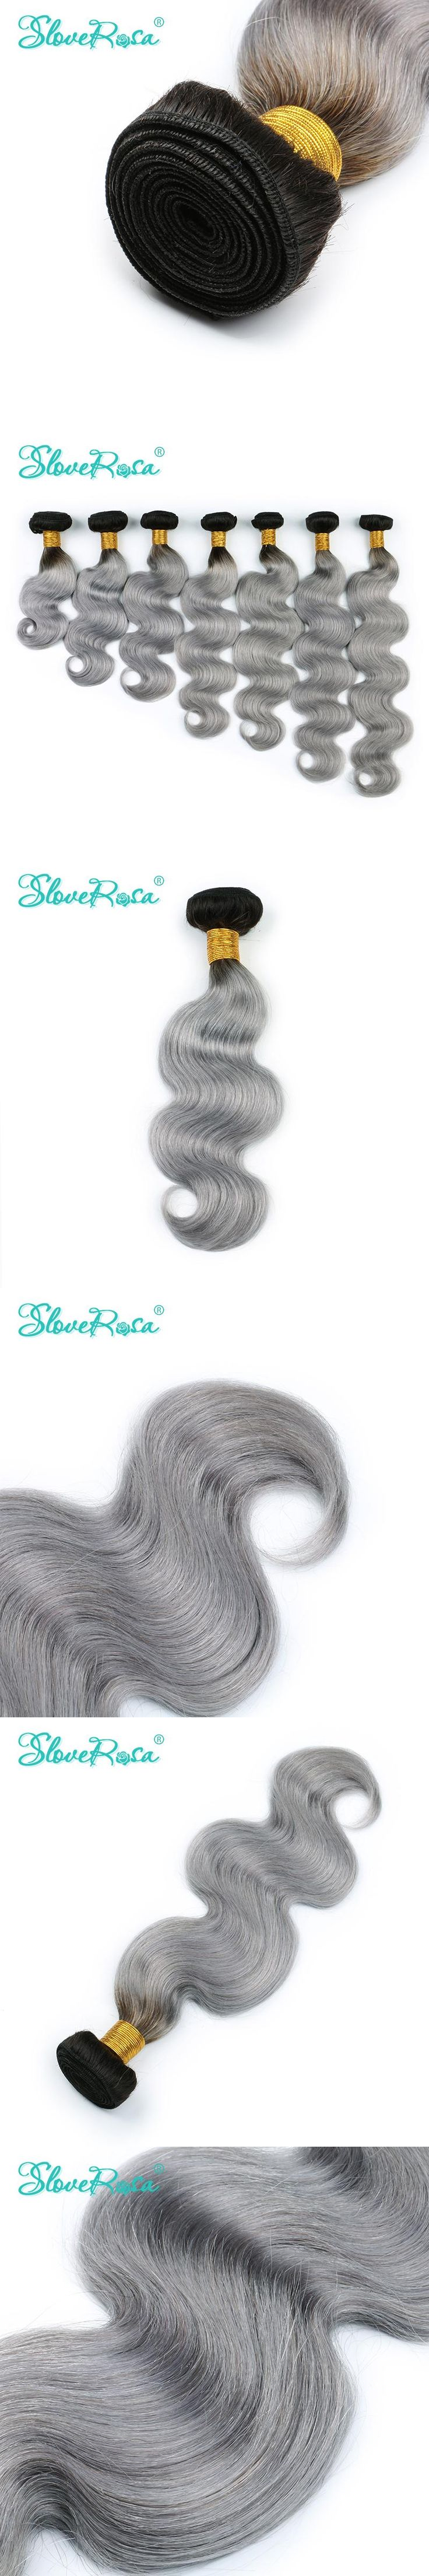 Slove Rosa 1B/Grey Ombre Remy Human Hair Extensions Body Wave Hair 1 Bundle Gray Color Ombre Brazilian Hair Grey Hair Wave